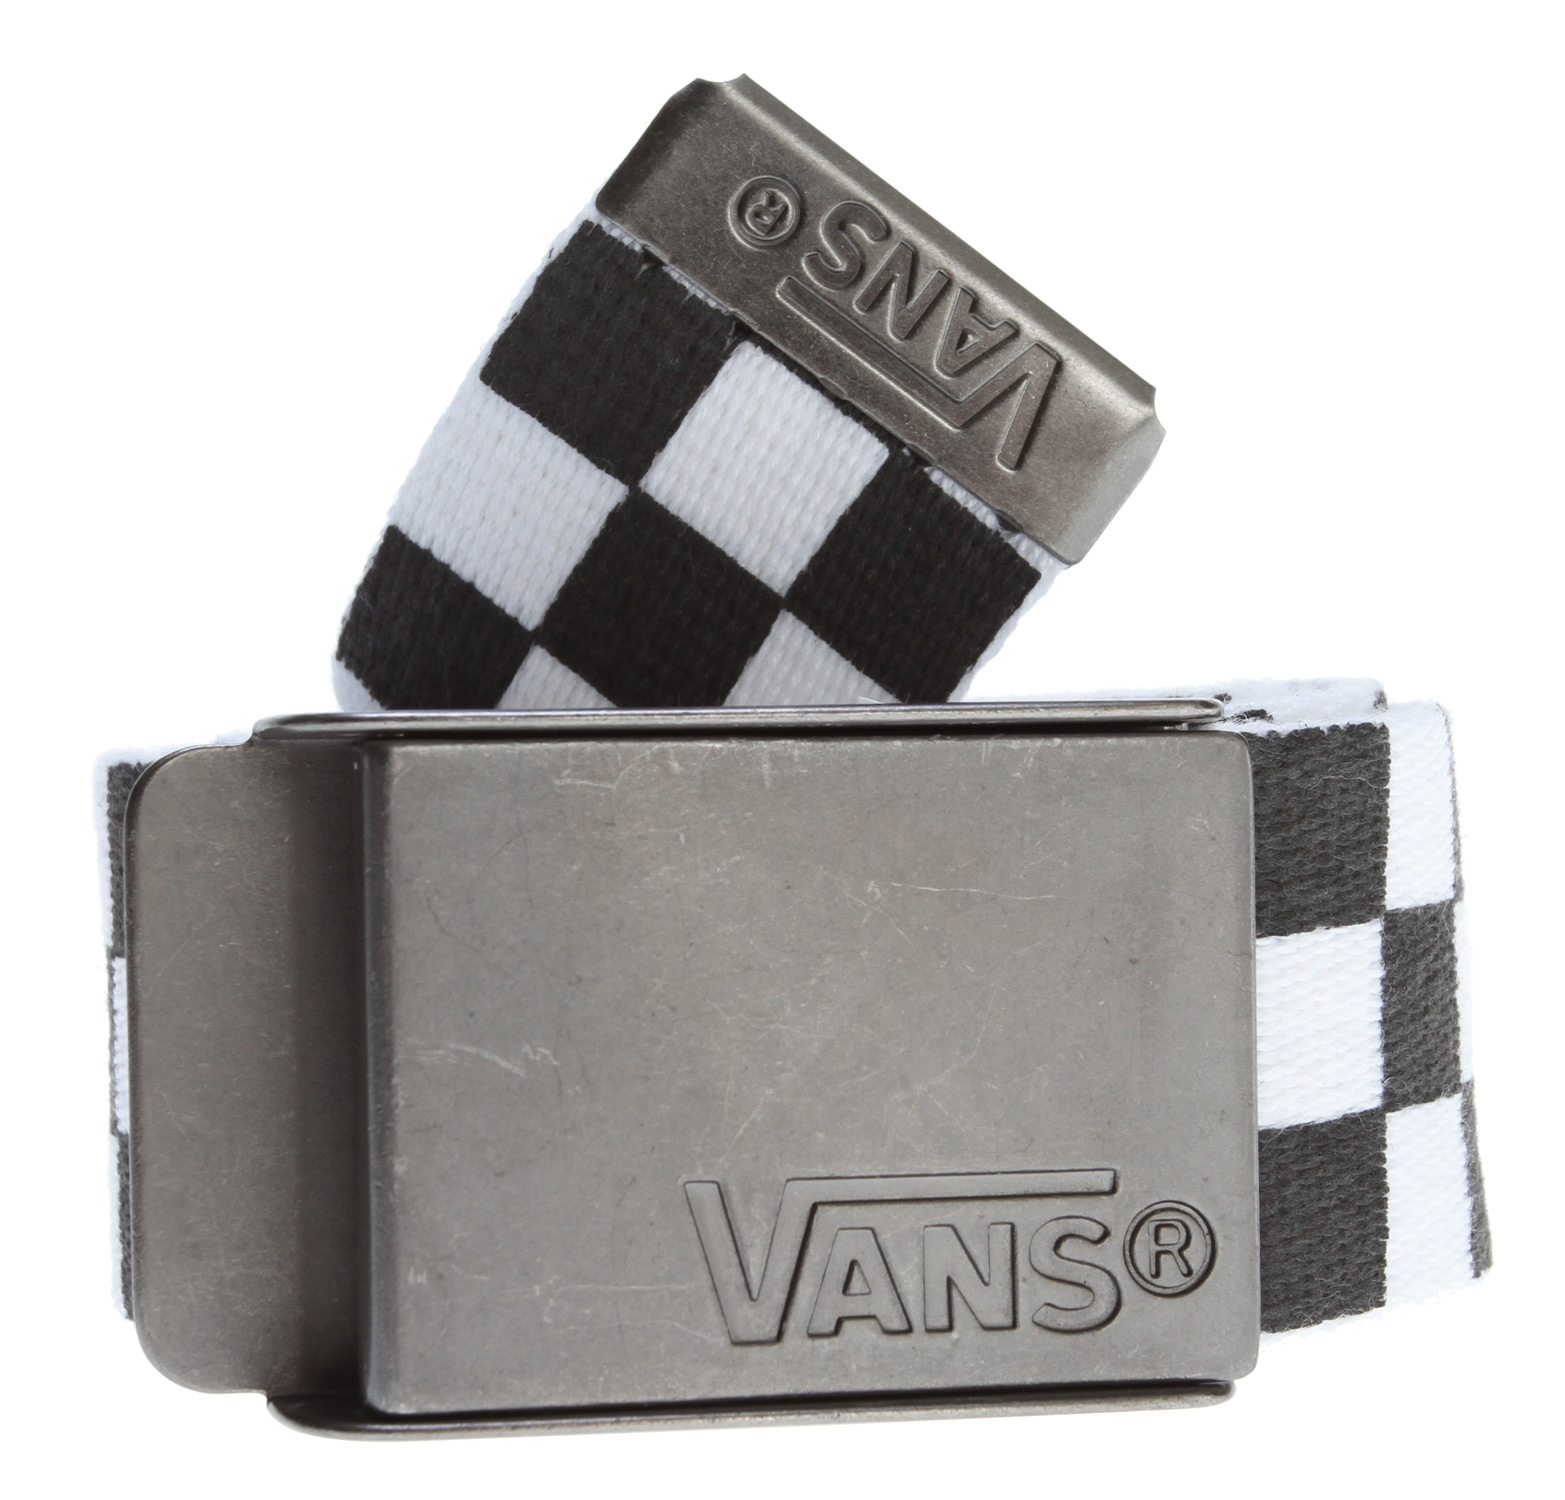 Skateboard Keep your pants up where they belong, with style, with the Vans Deppster Web Belt. This comfy 100% polyester webbed belt features an all-over checkerboard print that offers fine fashion without screaming, a oeHey, look at me!a  It comes with a cool custom Van's logo buckle, allowing you to look cool, subtly, and wear it more places than other styles might allow.Key Features of the Vans Deppster Web Belt: 100% Polyester web belt with all-over checkerboard print Custom Vans buckle and tipping. - $15.00